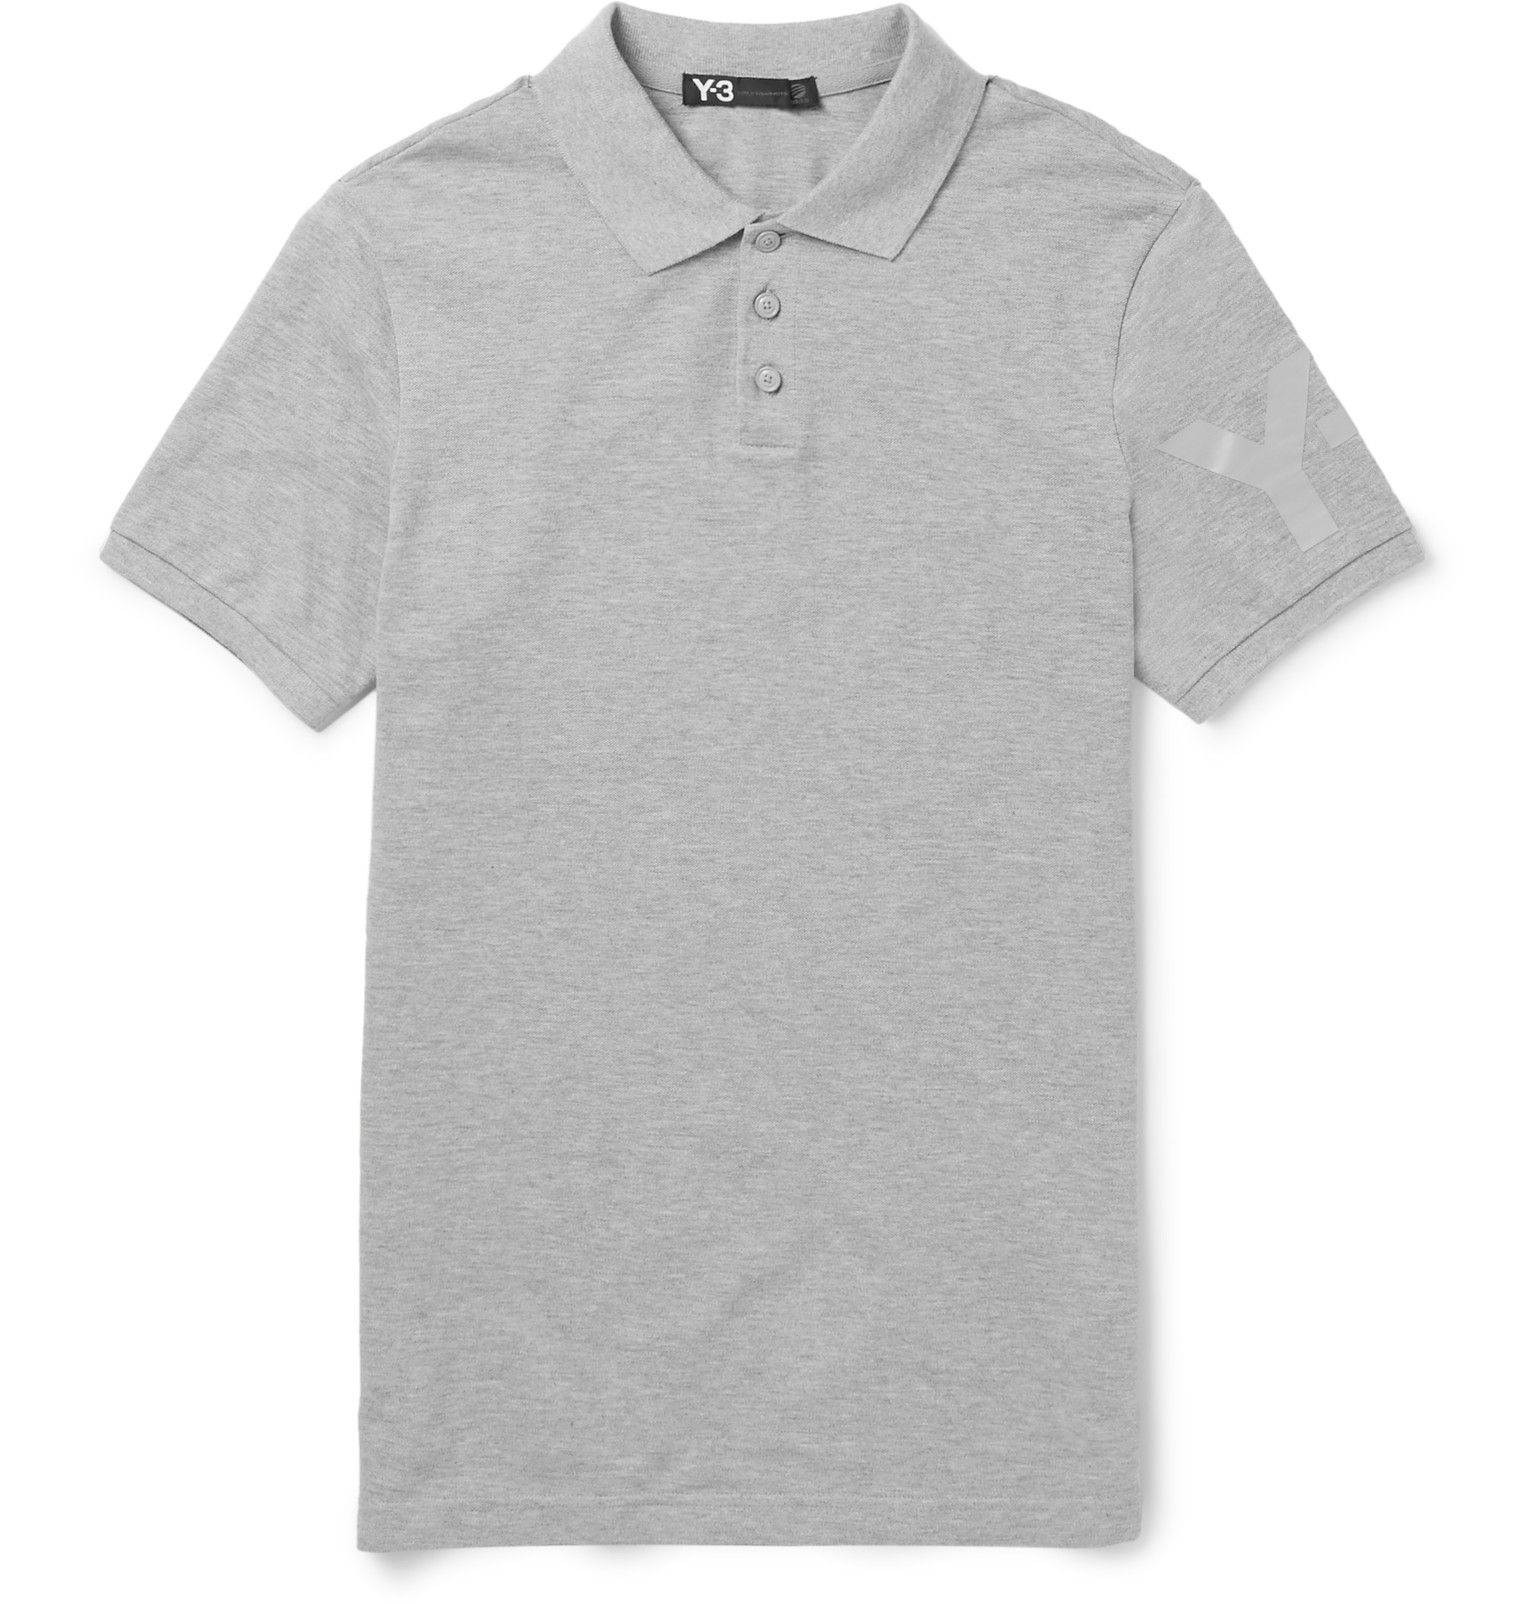 bc79e1da Authentic HERMES Made in Italy POCKET POLO GOLF SHIRT Sz Mens XXL Tan  #HErmes #PoloRugby | Rare Shirts | Shirts, Golf shirts, Polo